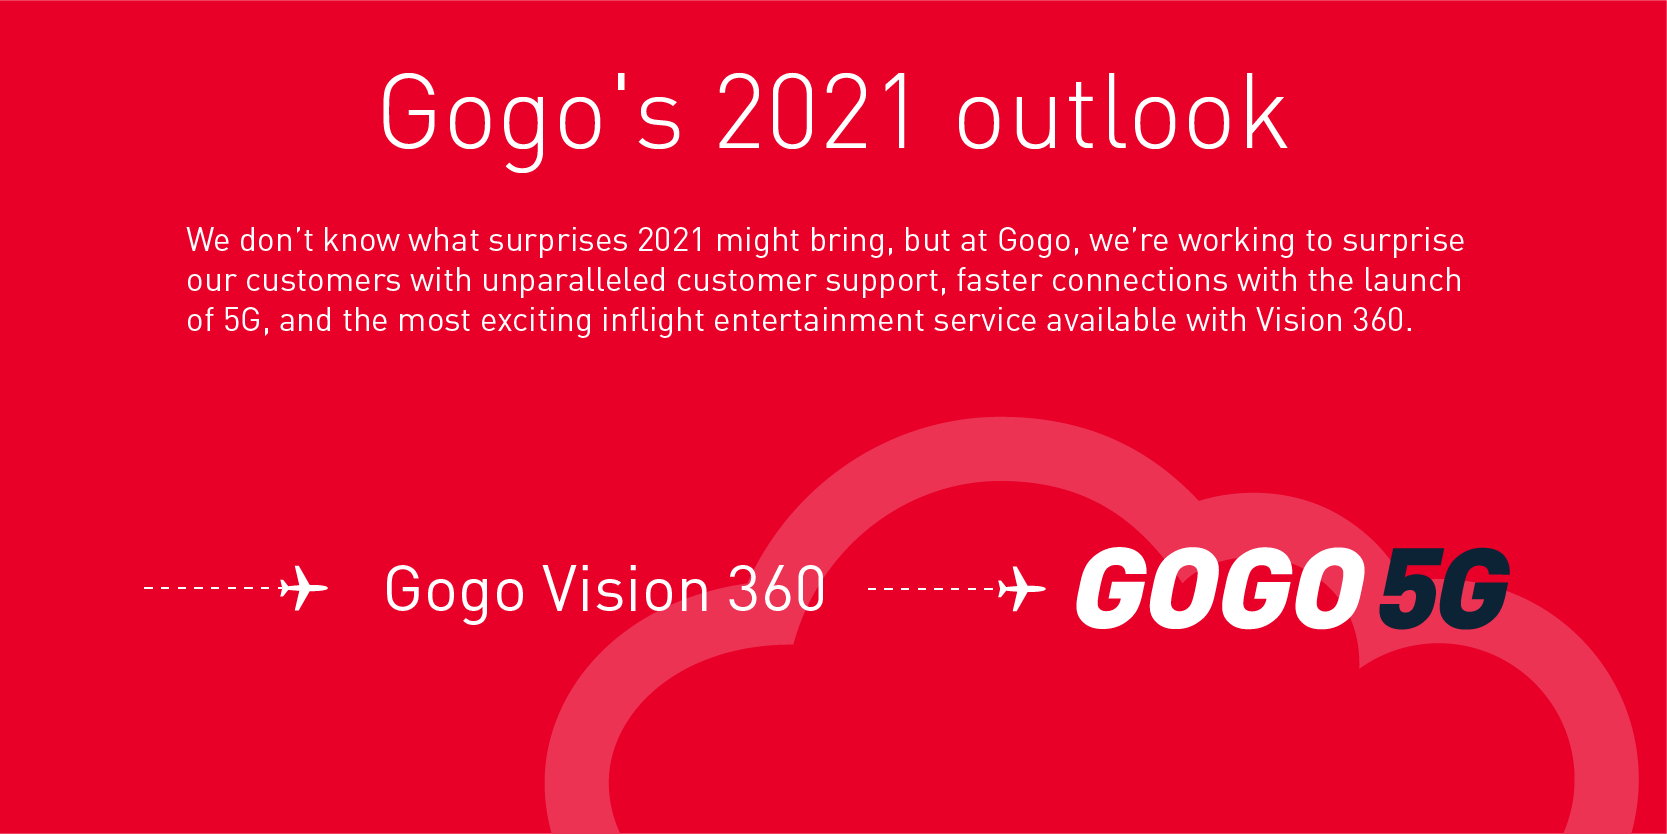 Gogo's 2021 outlook